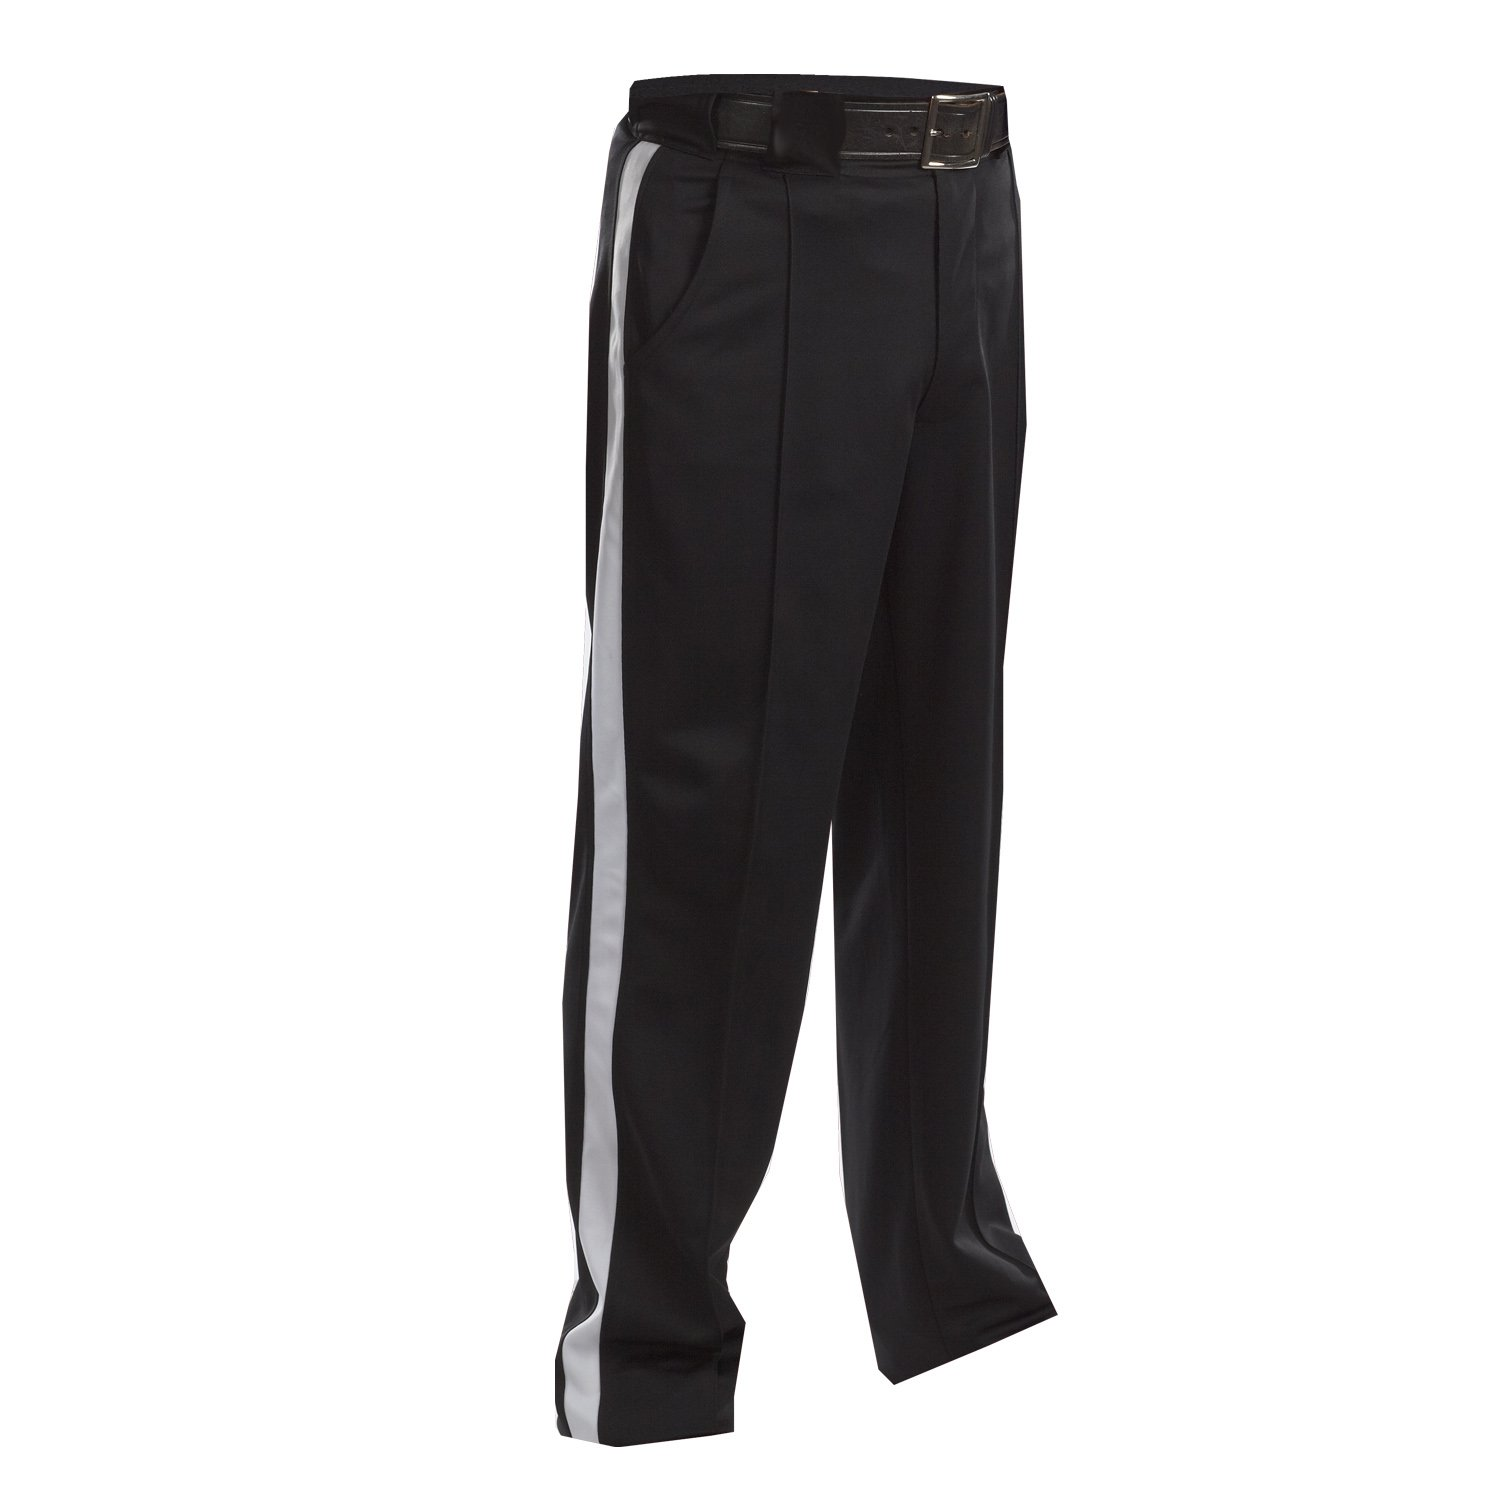 Adams USA Smitty FBS182 Football Officials Warm Weather Weight Pants